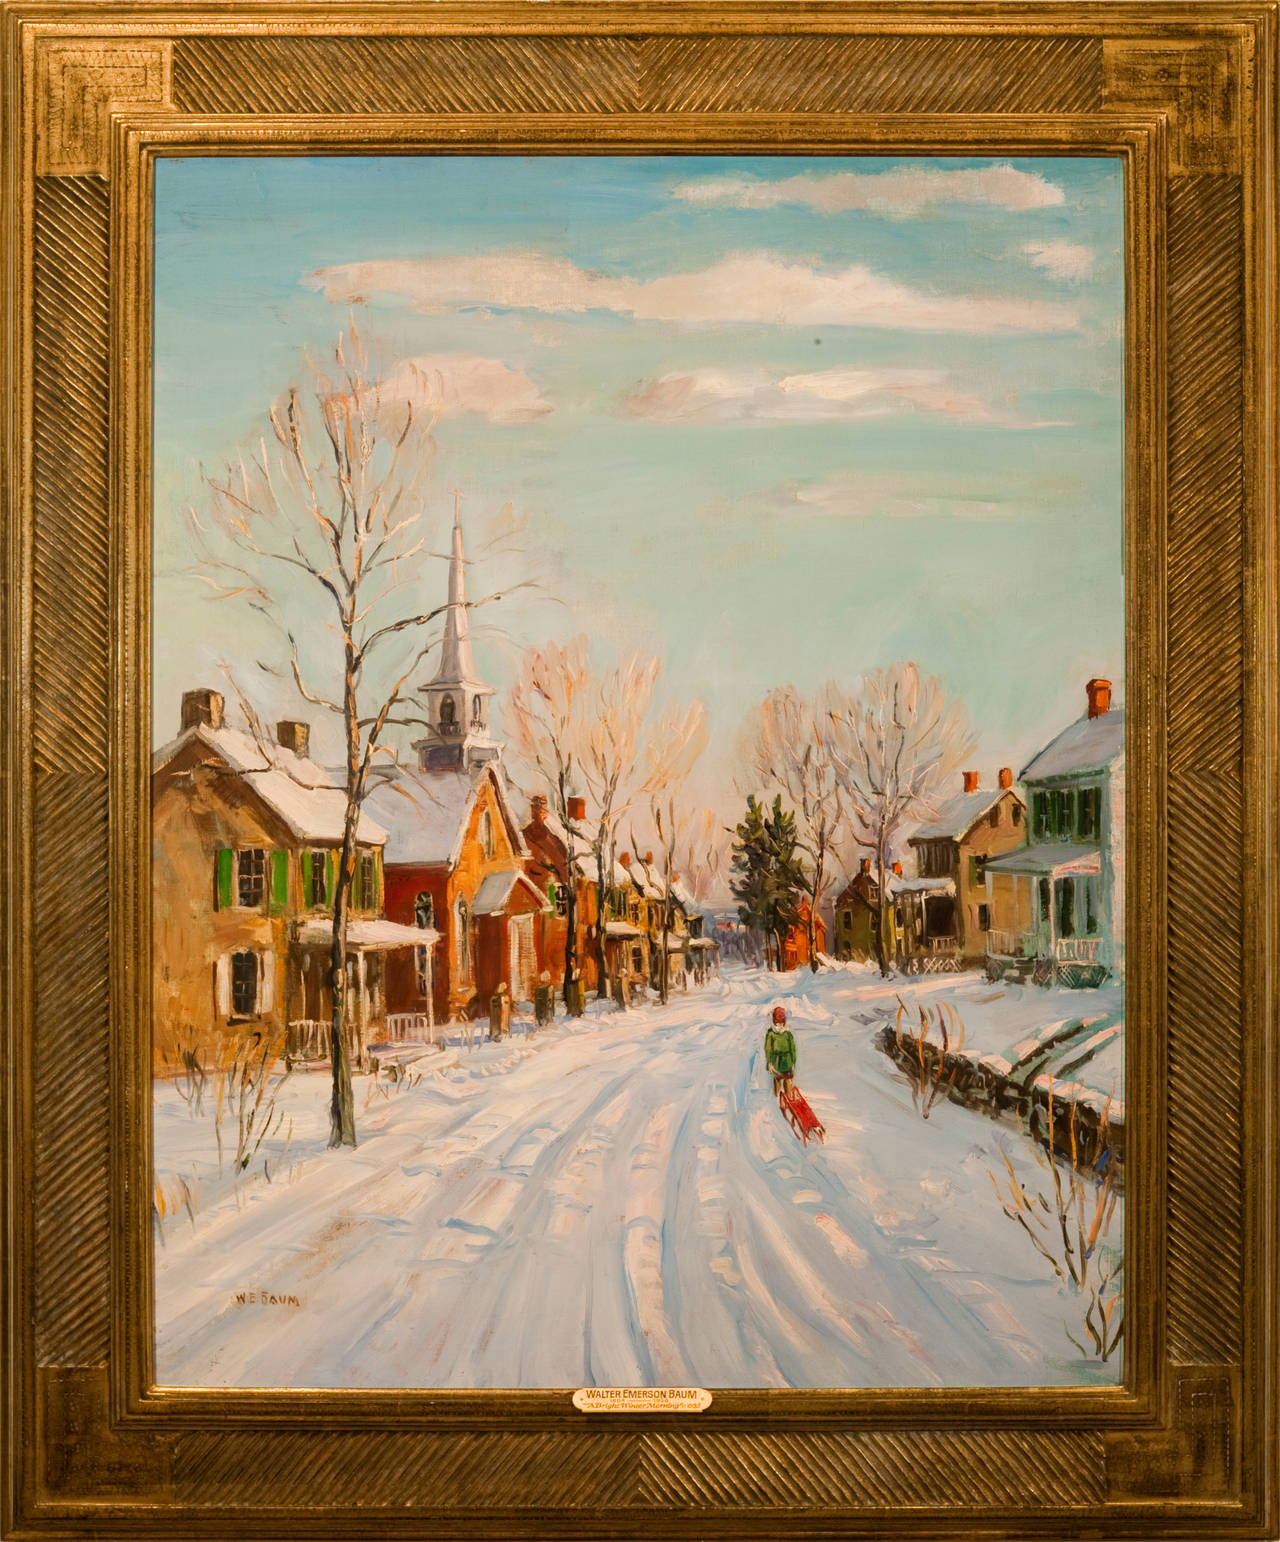 bright winter morning essays This is hand painted on canvas, and is high quality | ebay details about high quality oil painting on stretched canvas 8x10-bright winter morning.